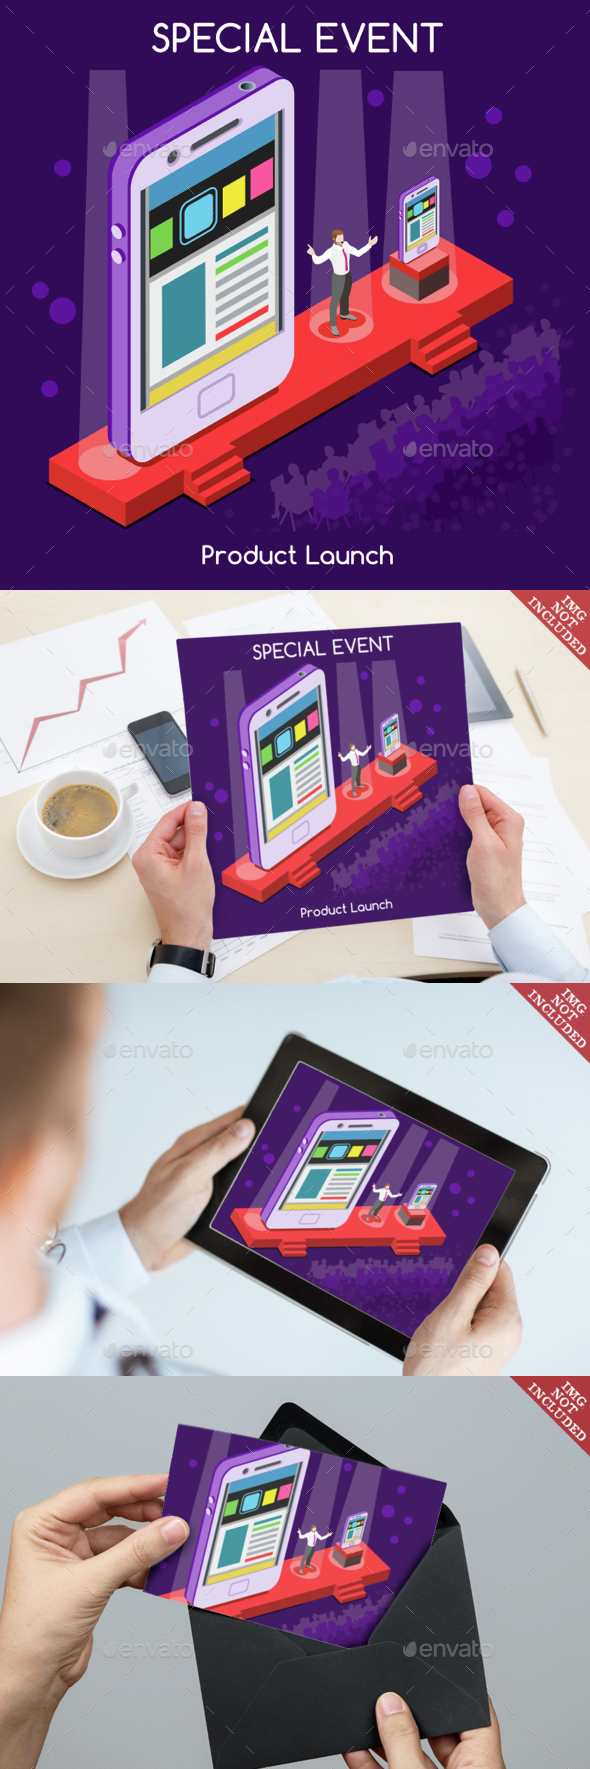 Special Event People Isometric - Concepts Business